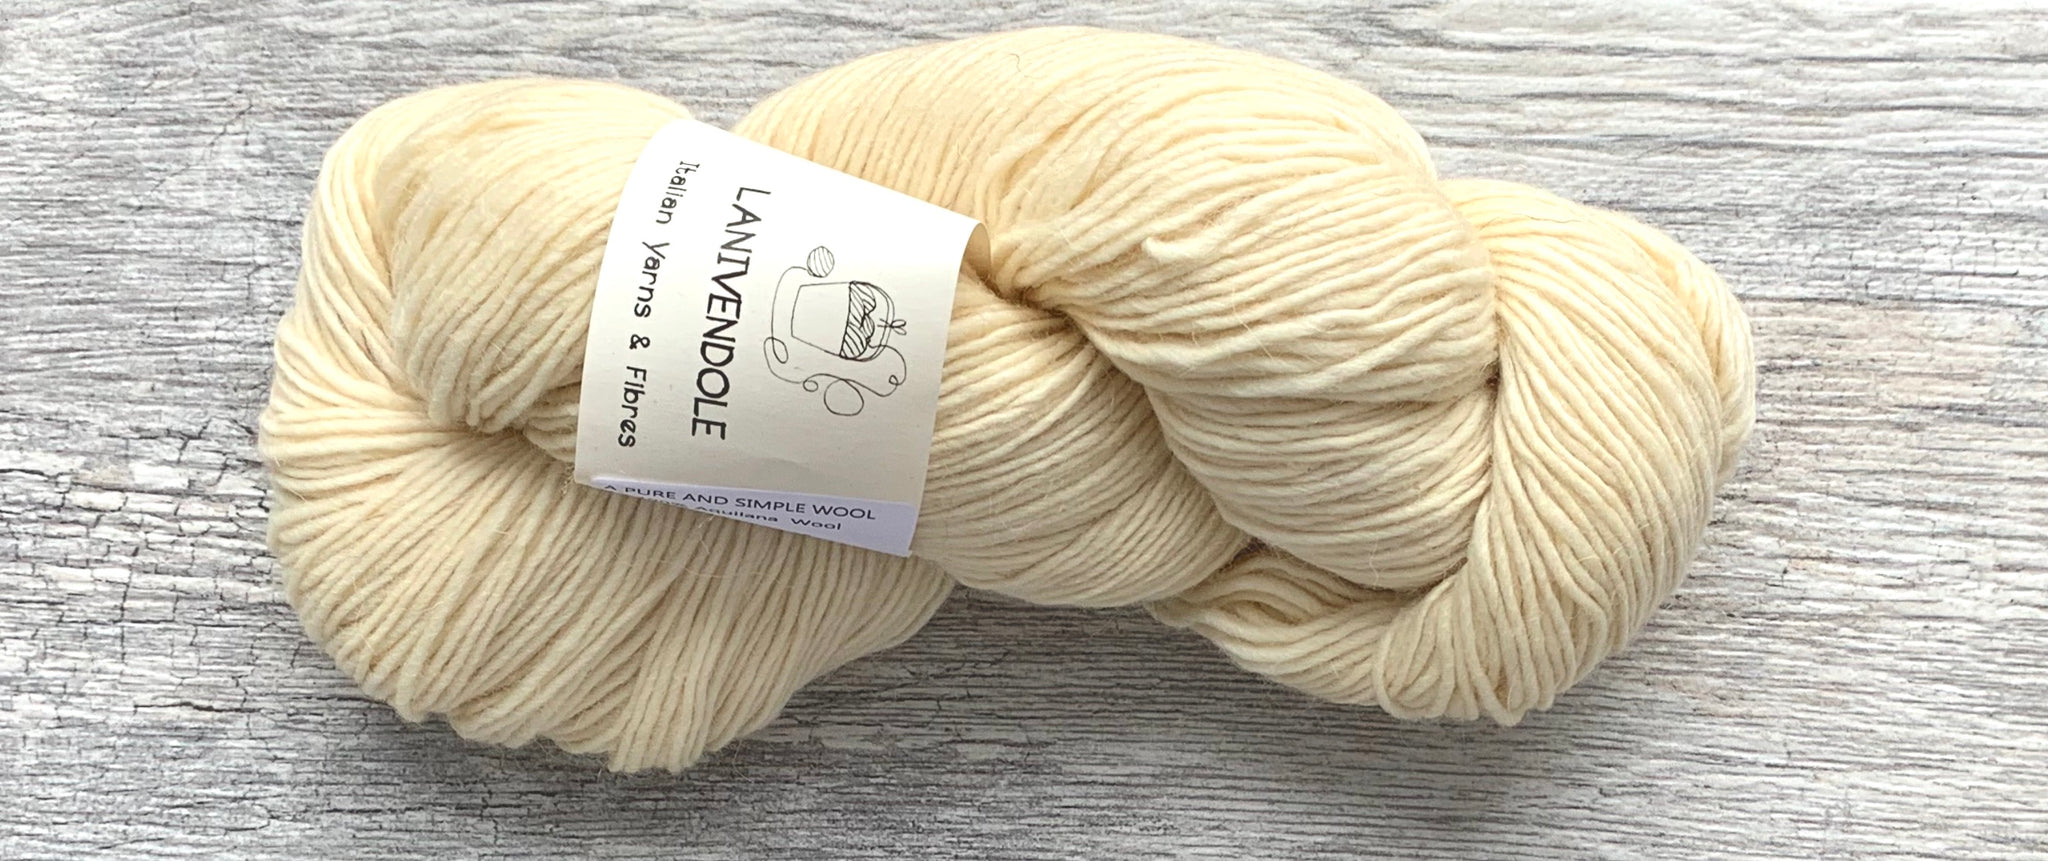 A Pure & Simple Wool - Lanivendole - Farm to Cable Yarns